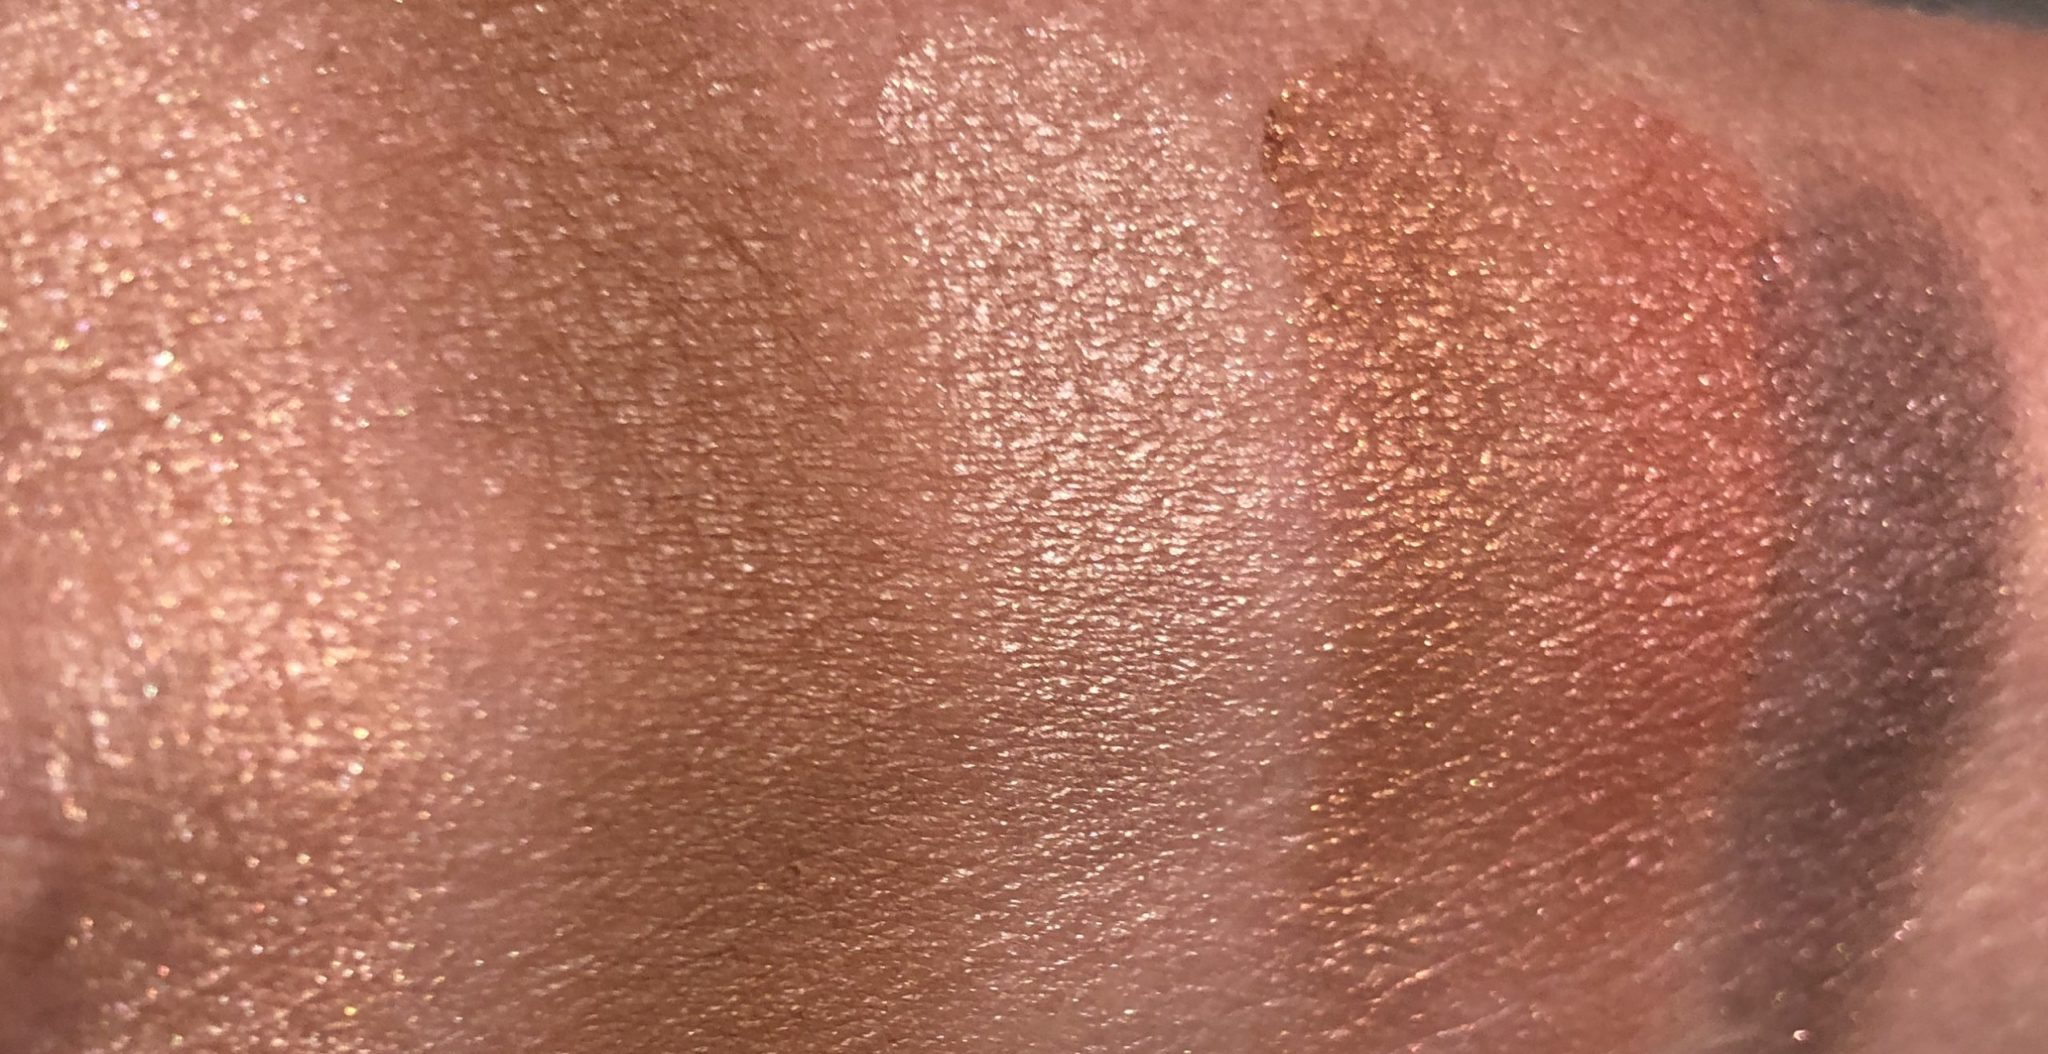 RED/HARNESS PALETTE SWATCHES LEFT IS HIGHLIGHTER, THEN BRONZER, AND FINALLY THE EYESHADOW QUAD